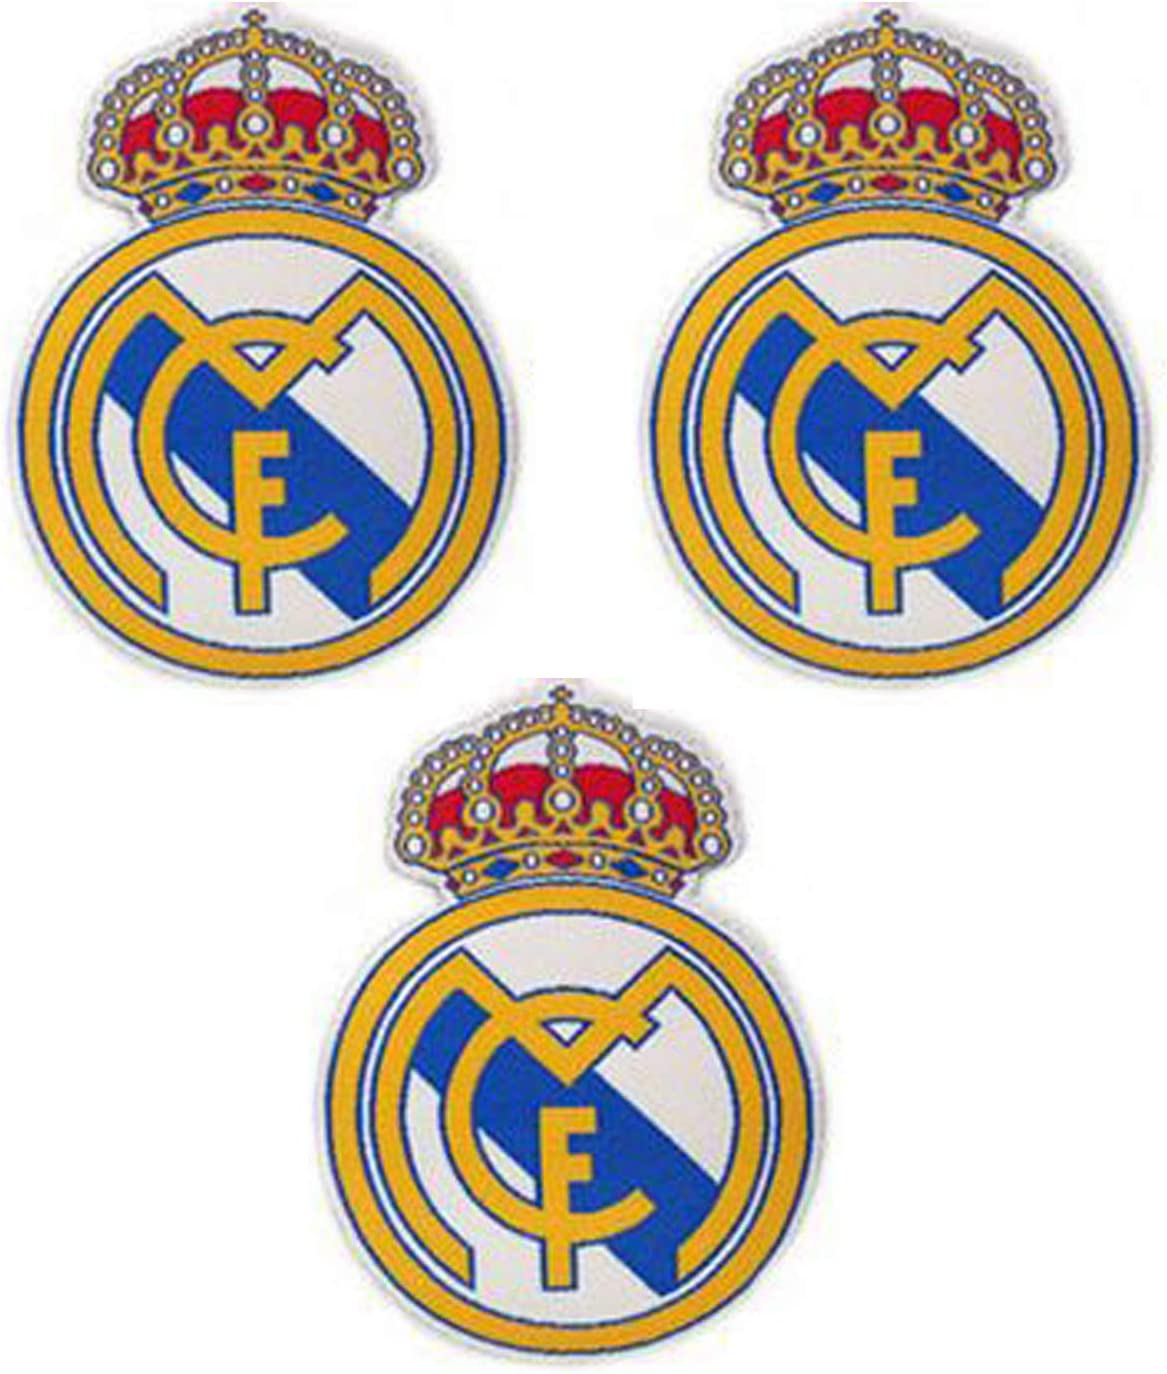 3 Pieces Soccer Team Patches Sew On//Iron On Football Club Emblem Sports Applique Accessories Decoration Patches for Jeans Jacket Clothing Handbag Shoes Caps